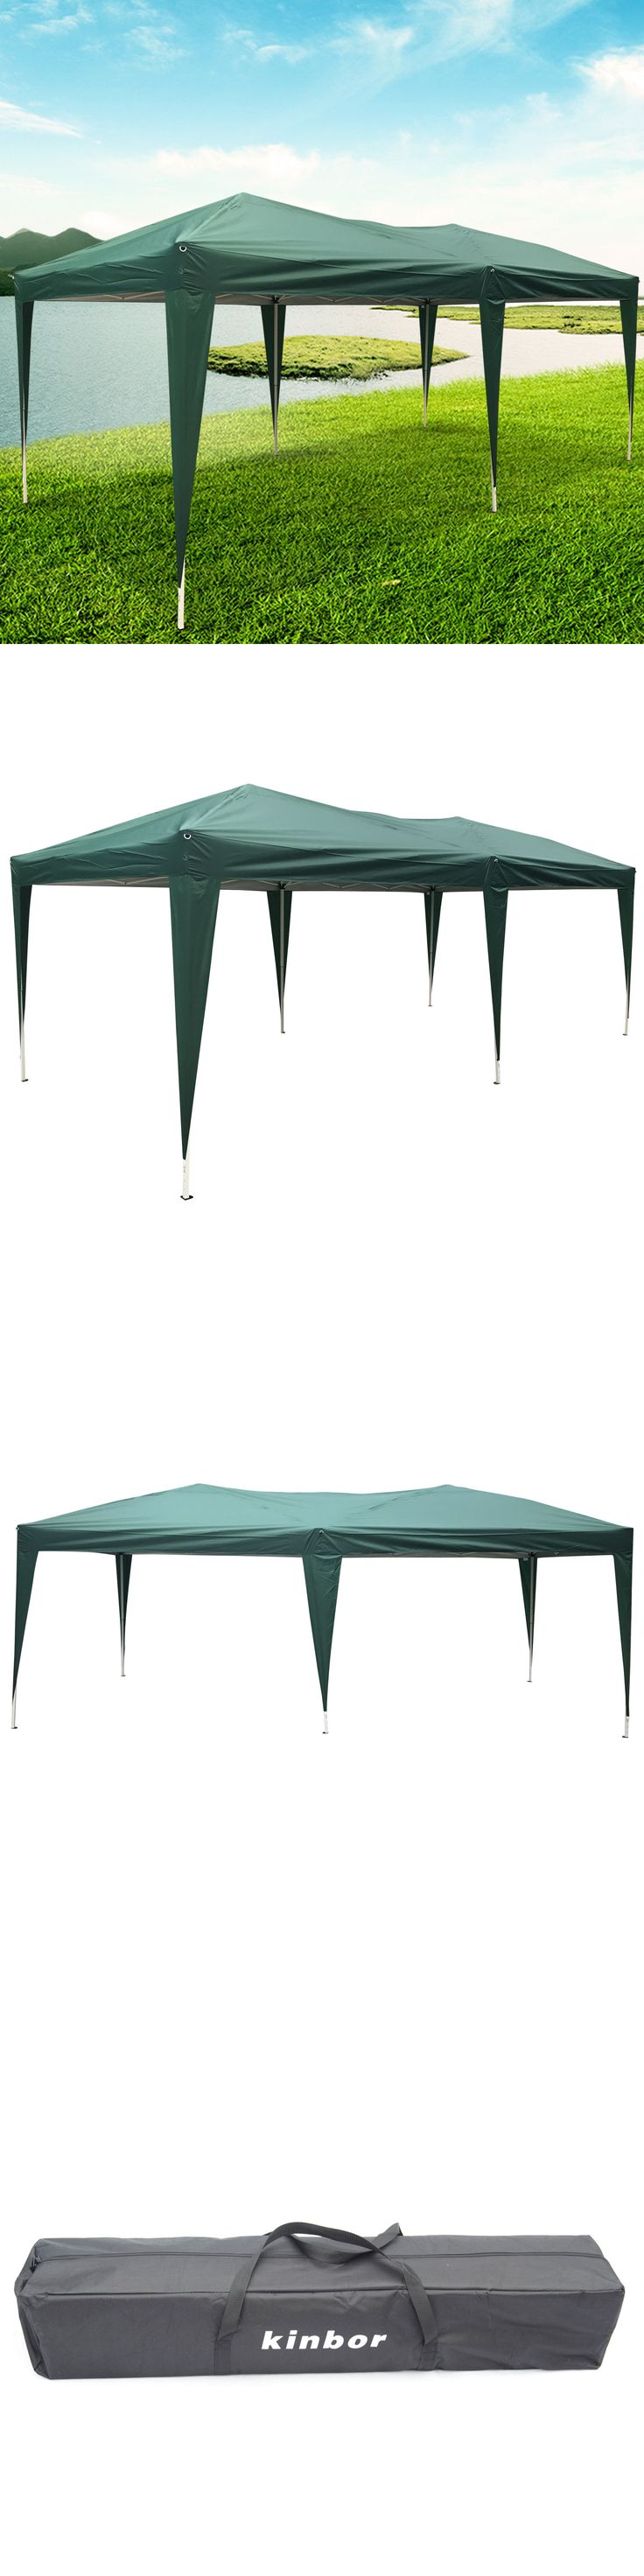 Awnings and Canopies 180992: 10'X20' Waterproof Tent Heavy Duty Outdoor Folding Gazebo Party Canopy, Green -> BUY IT NOW ONLY: $115.99 on eBay!